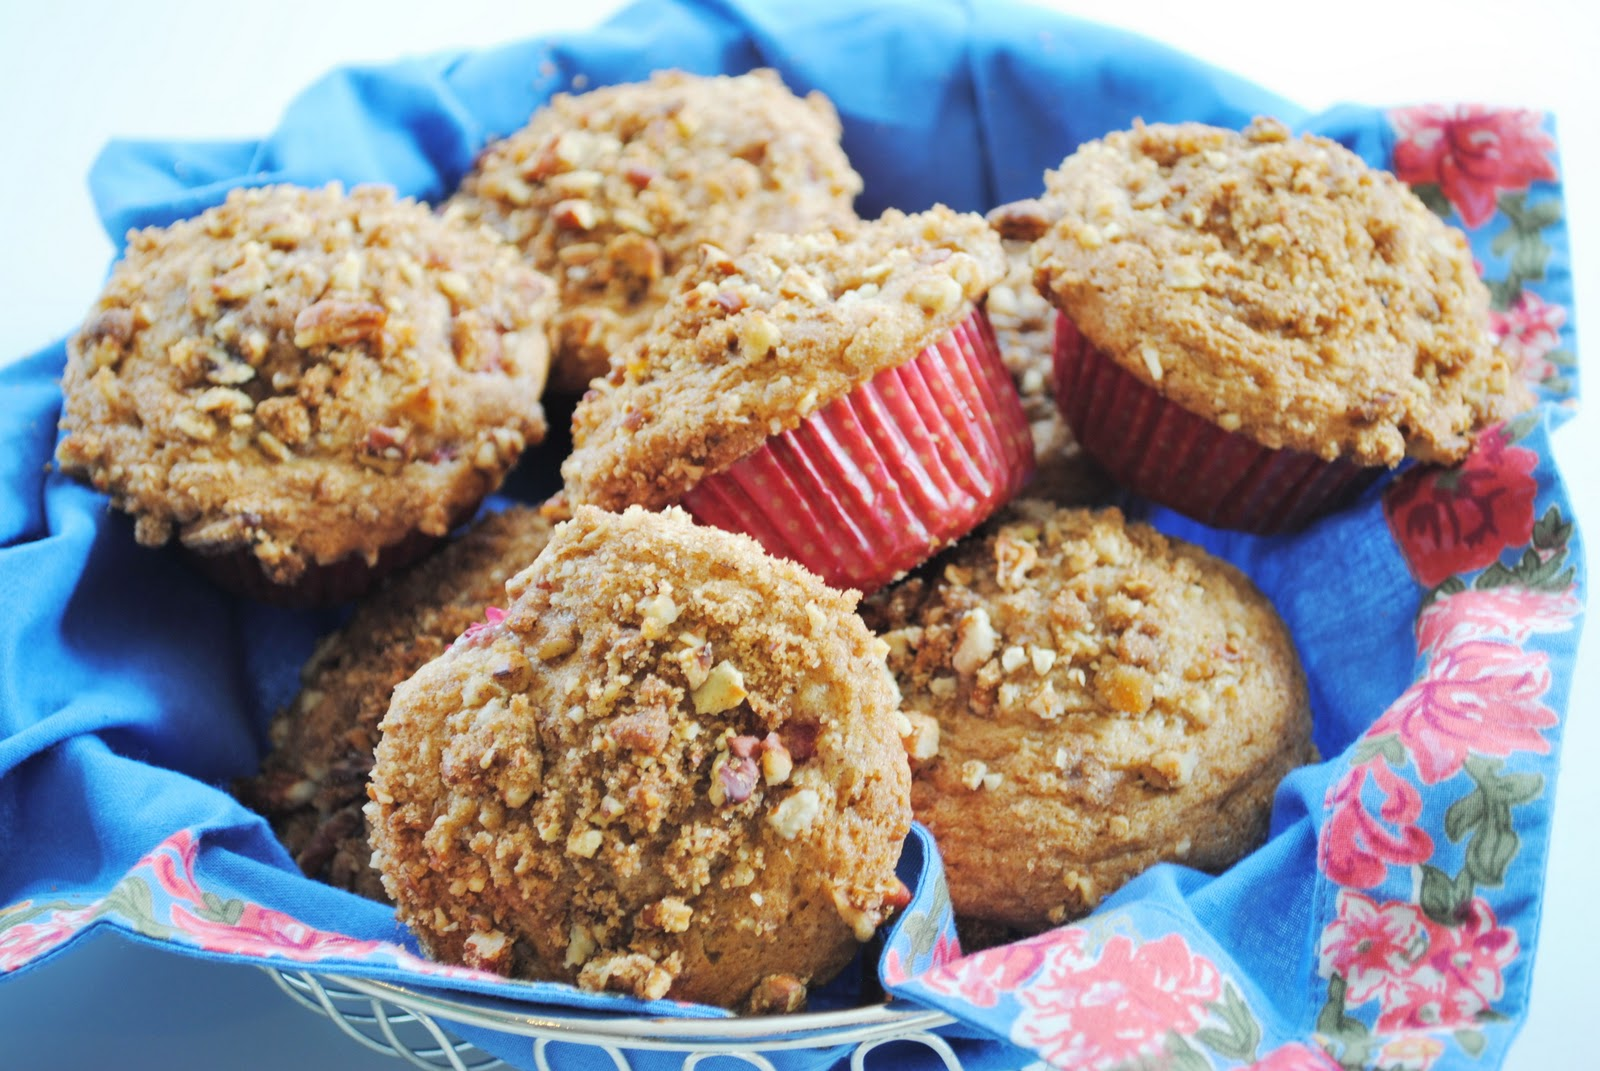 Ryan Bakes: Strawberry Streusel Muffins